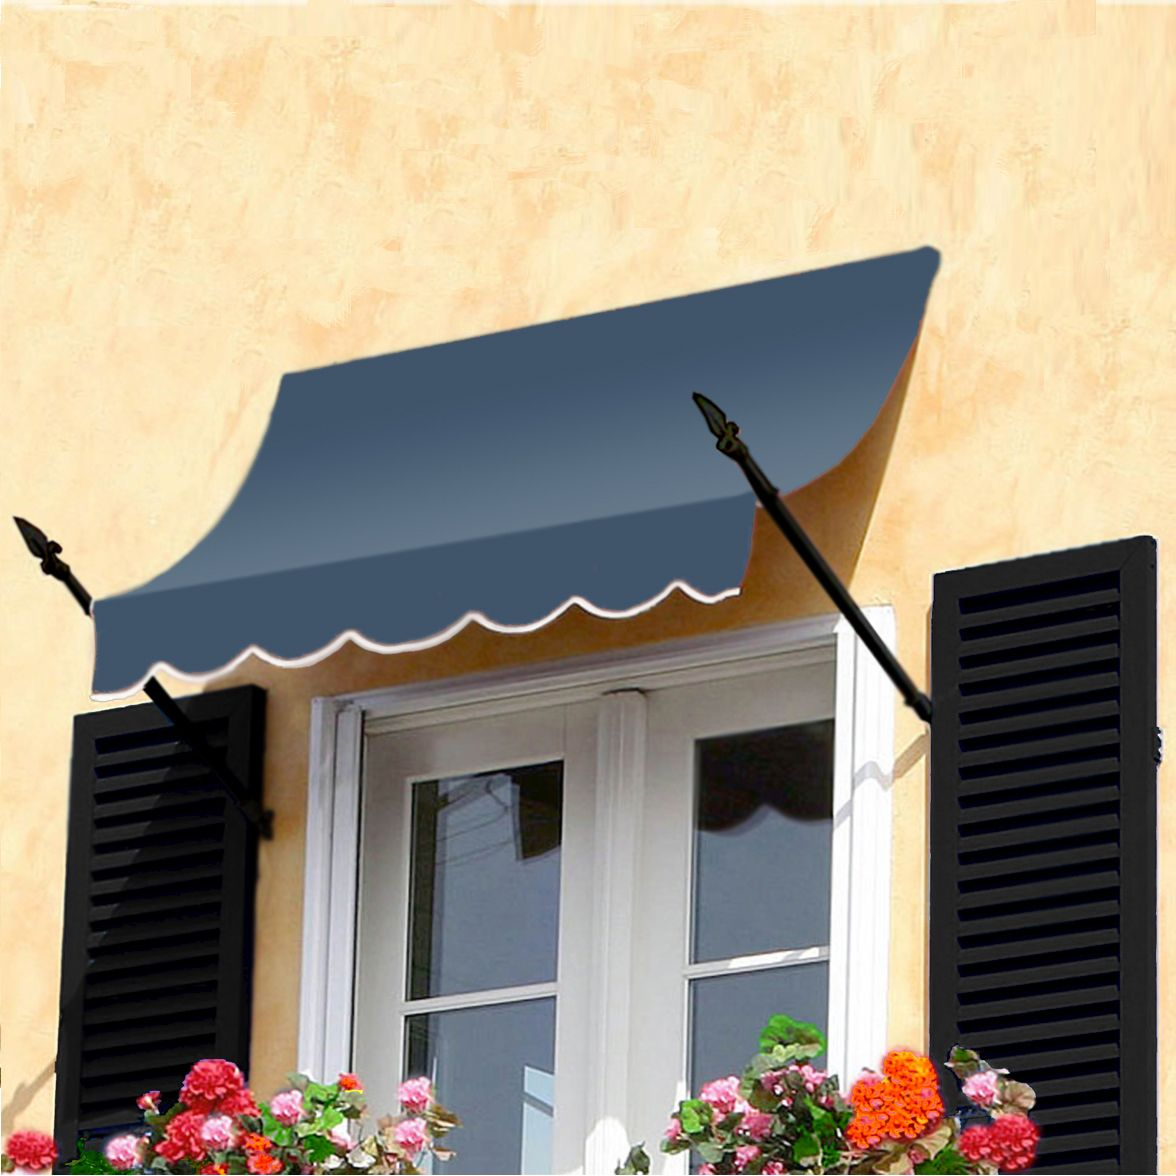 New Orleans Awning Awning Accessories Pool Decor